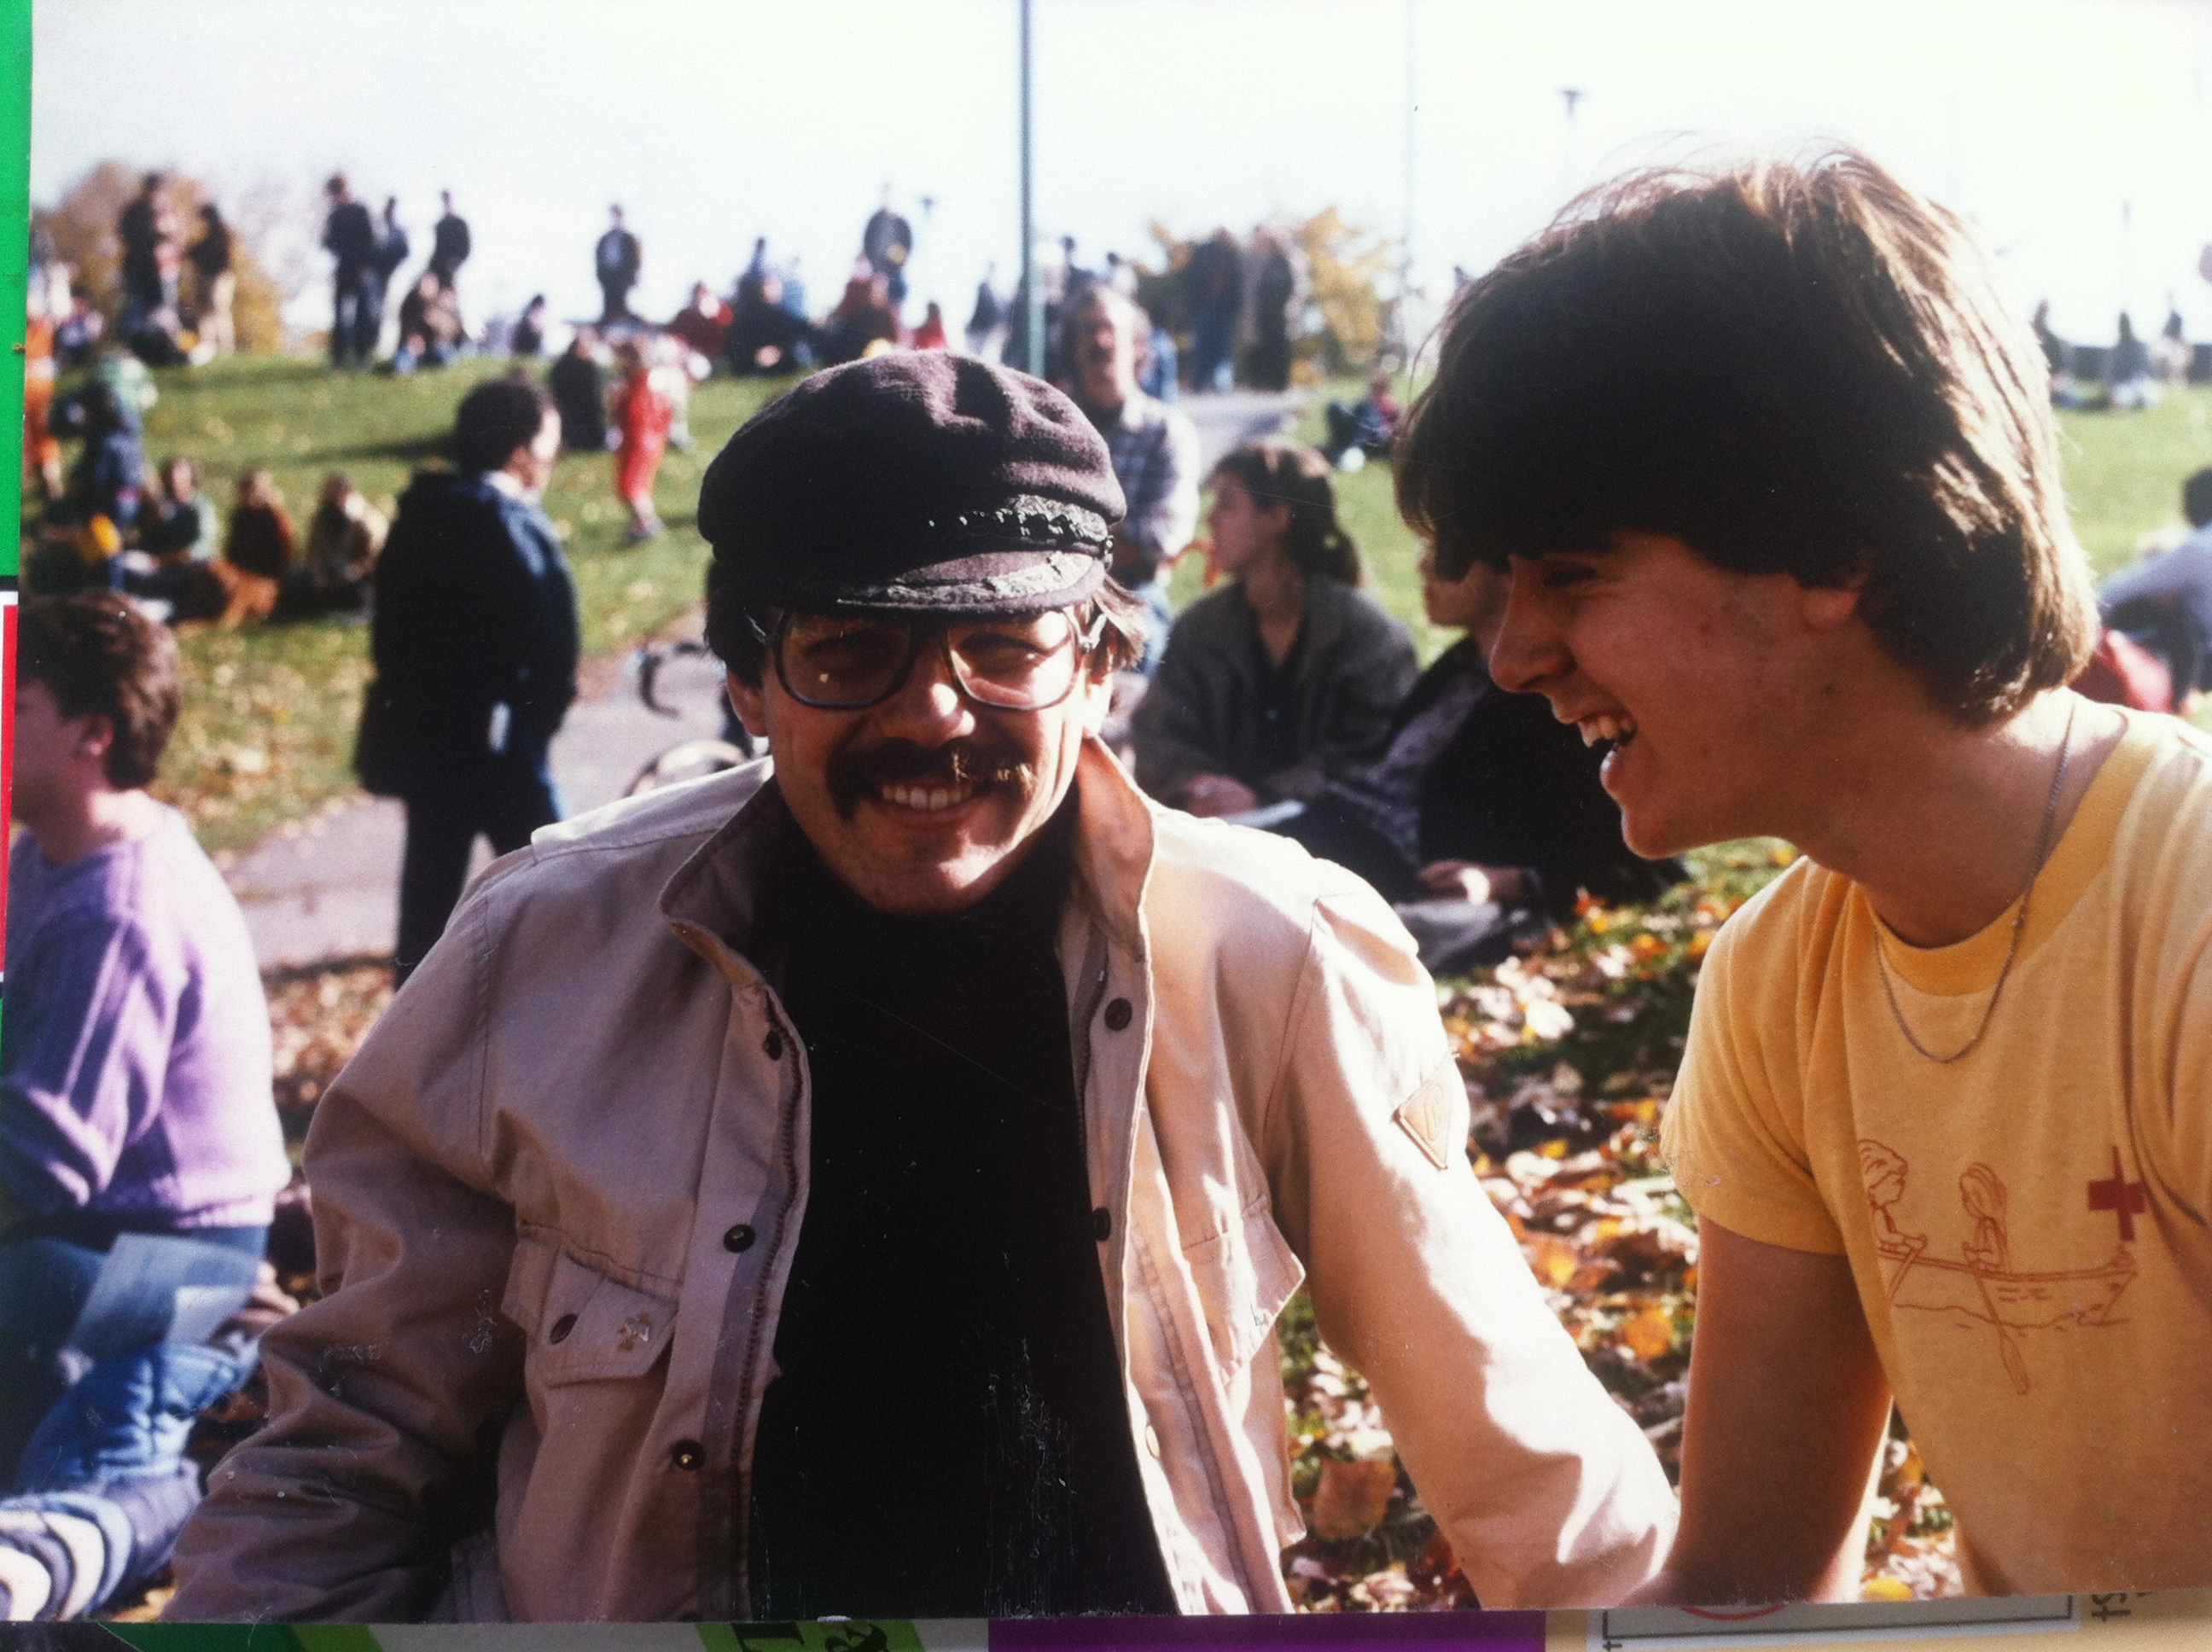 My first mentor John Lawson and me at a Bruce Cockburn concert c. 1984